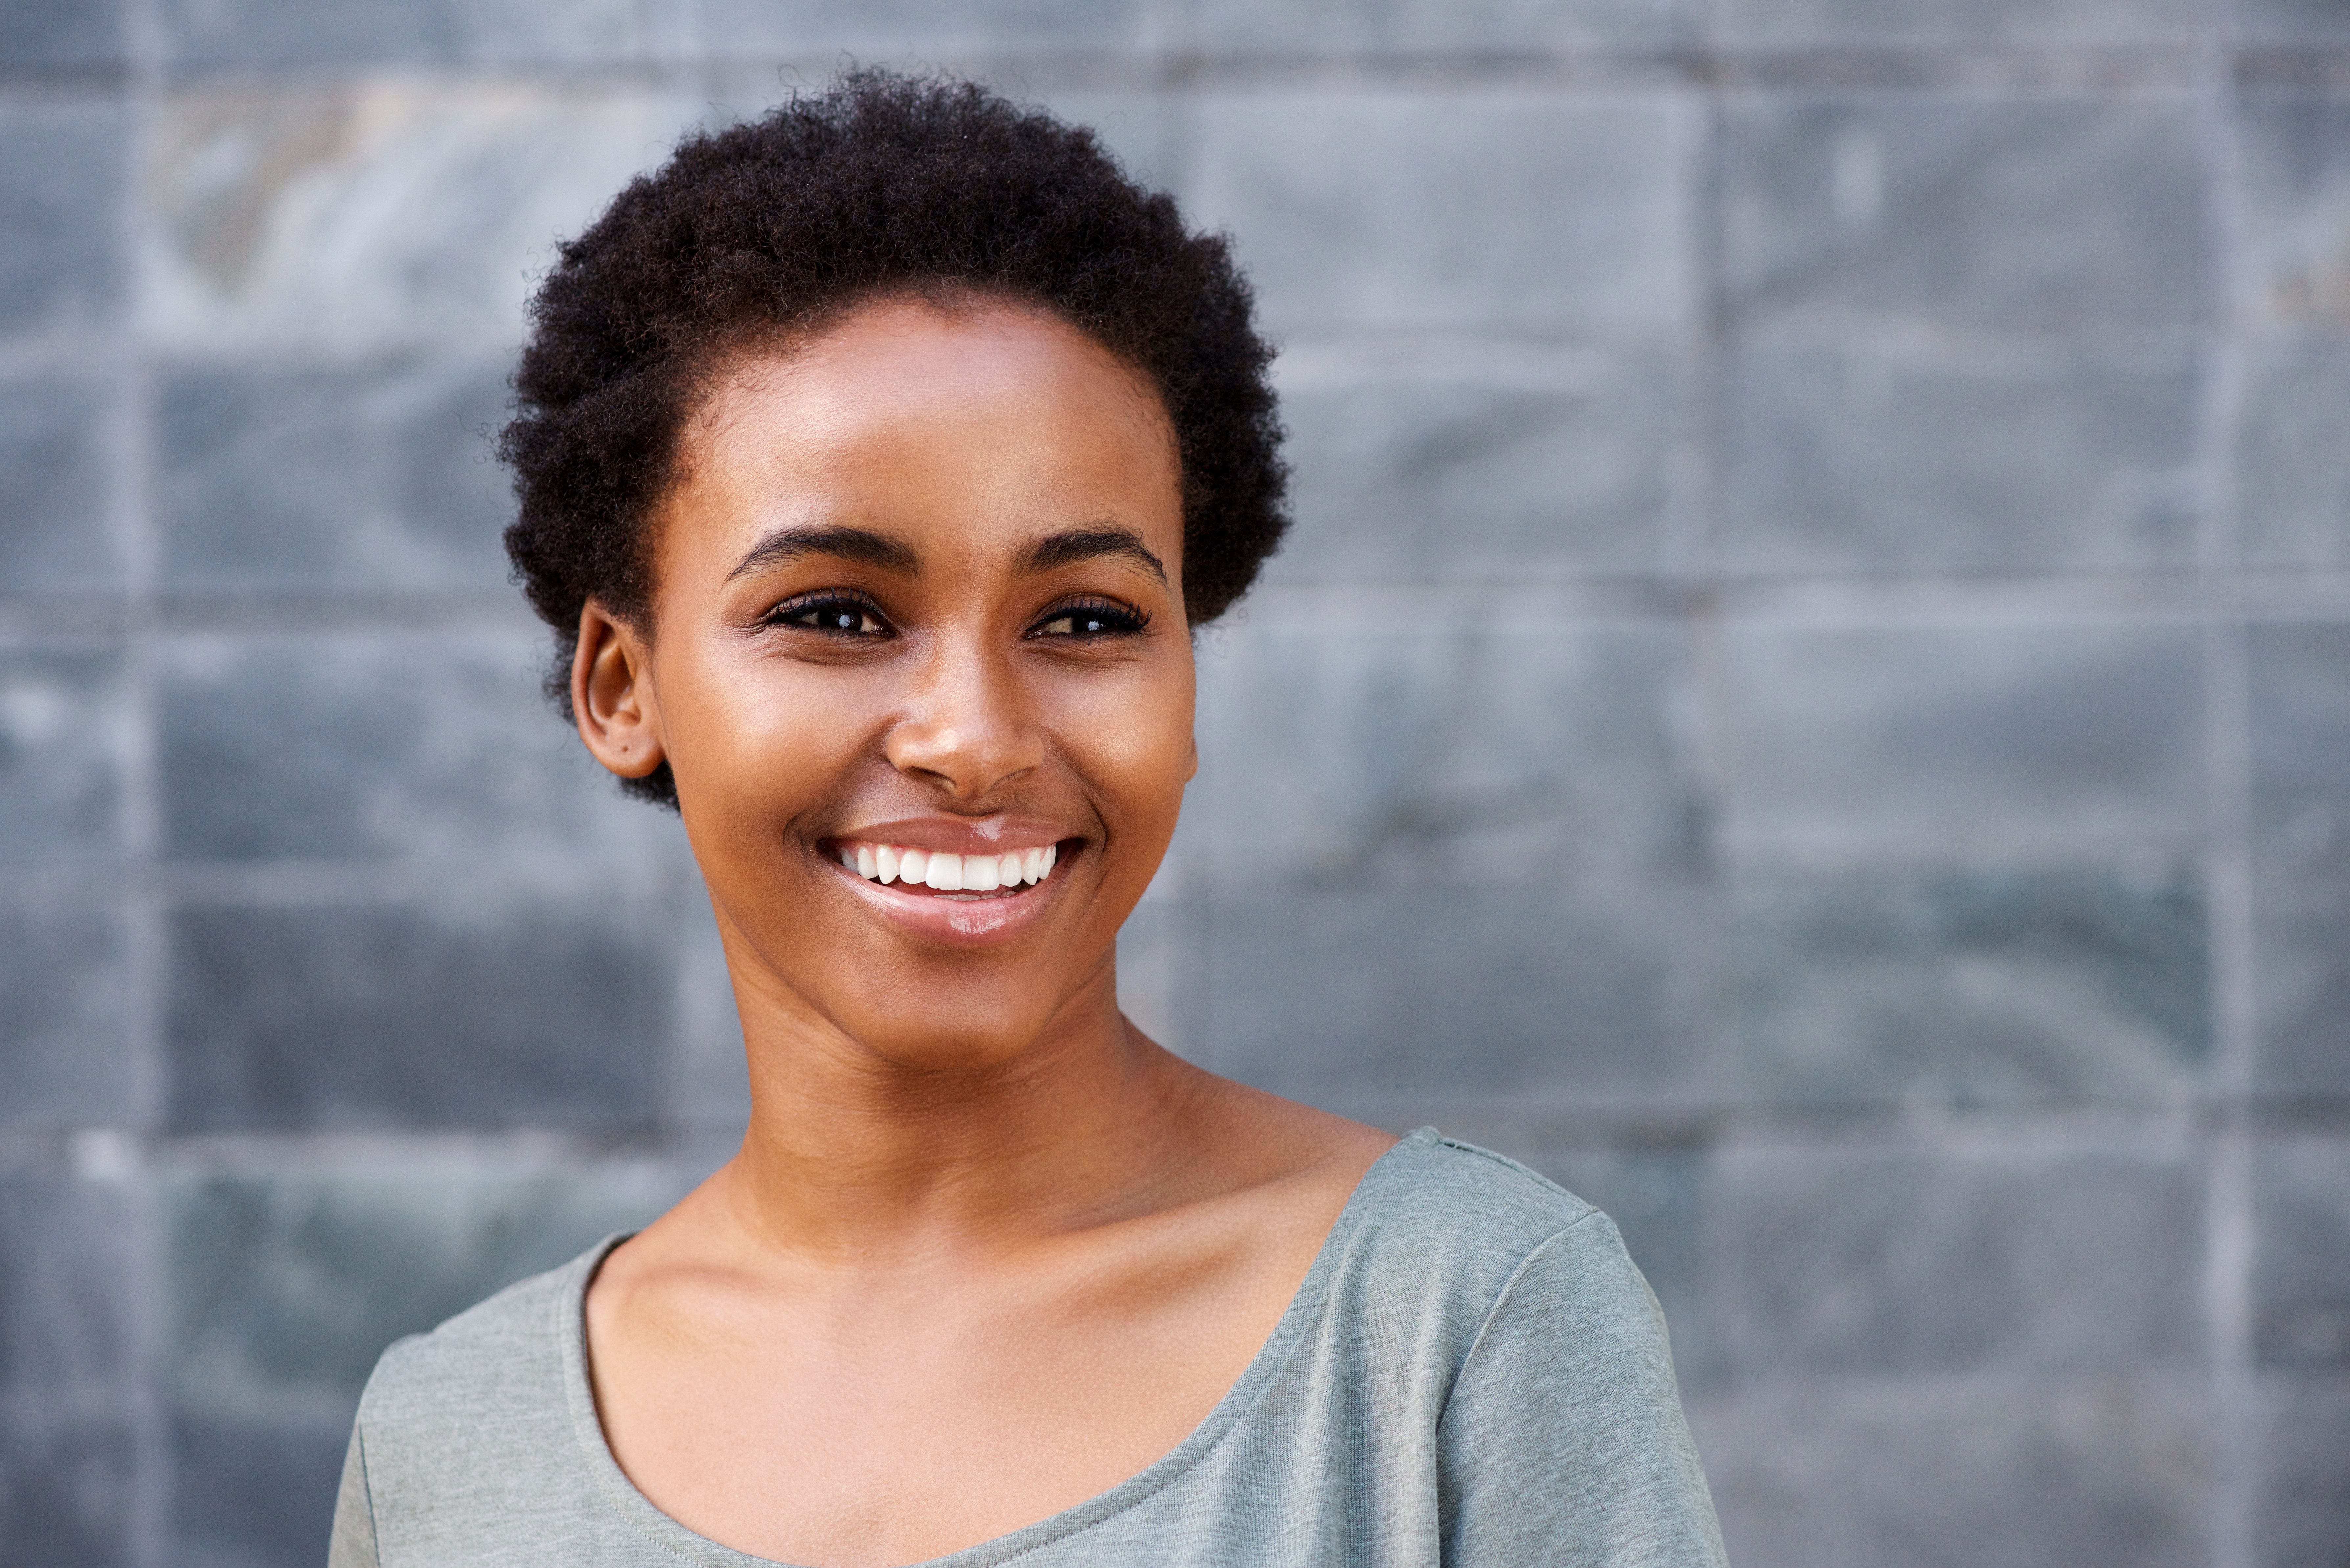 young African American woman with smooth skin